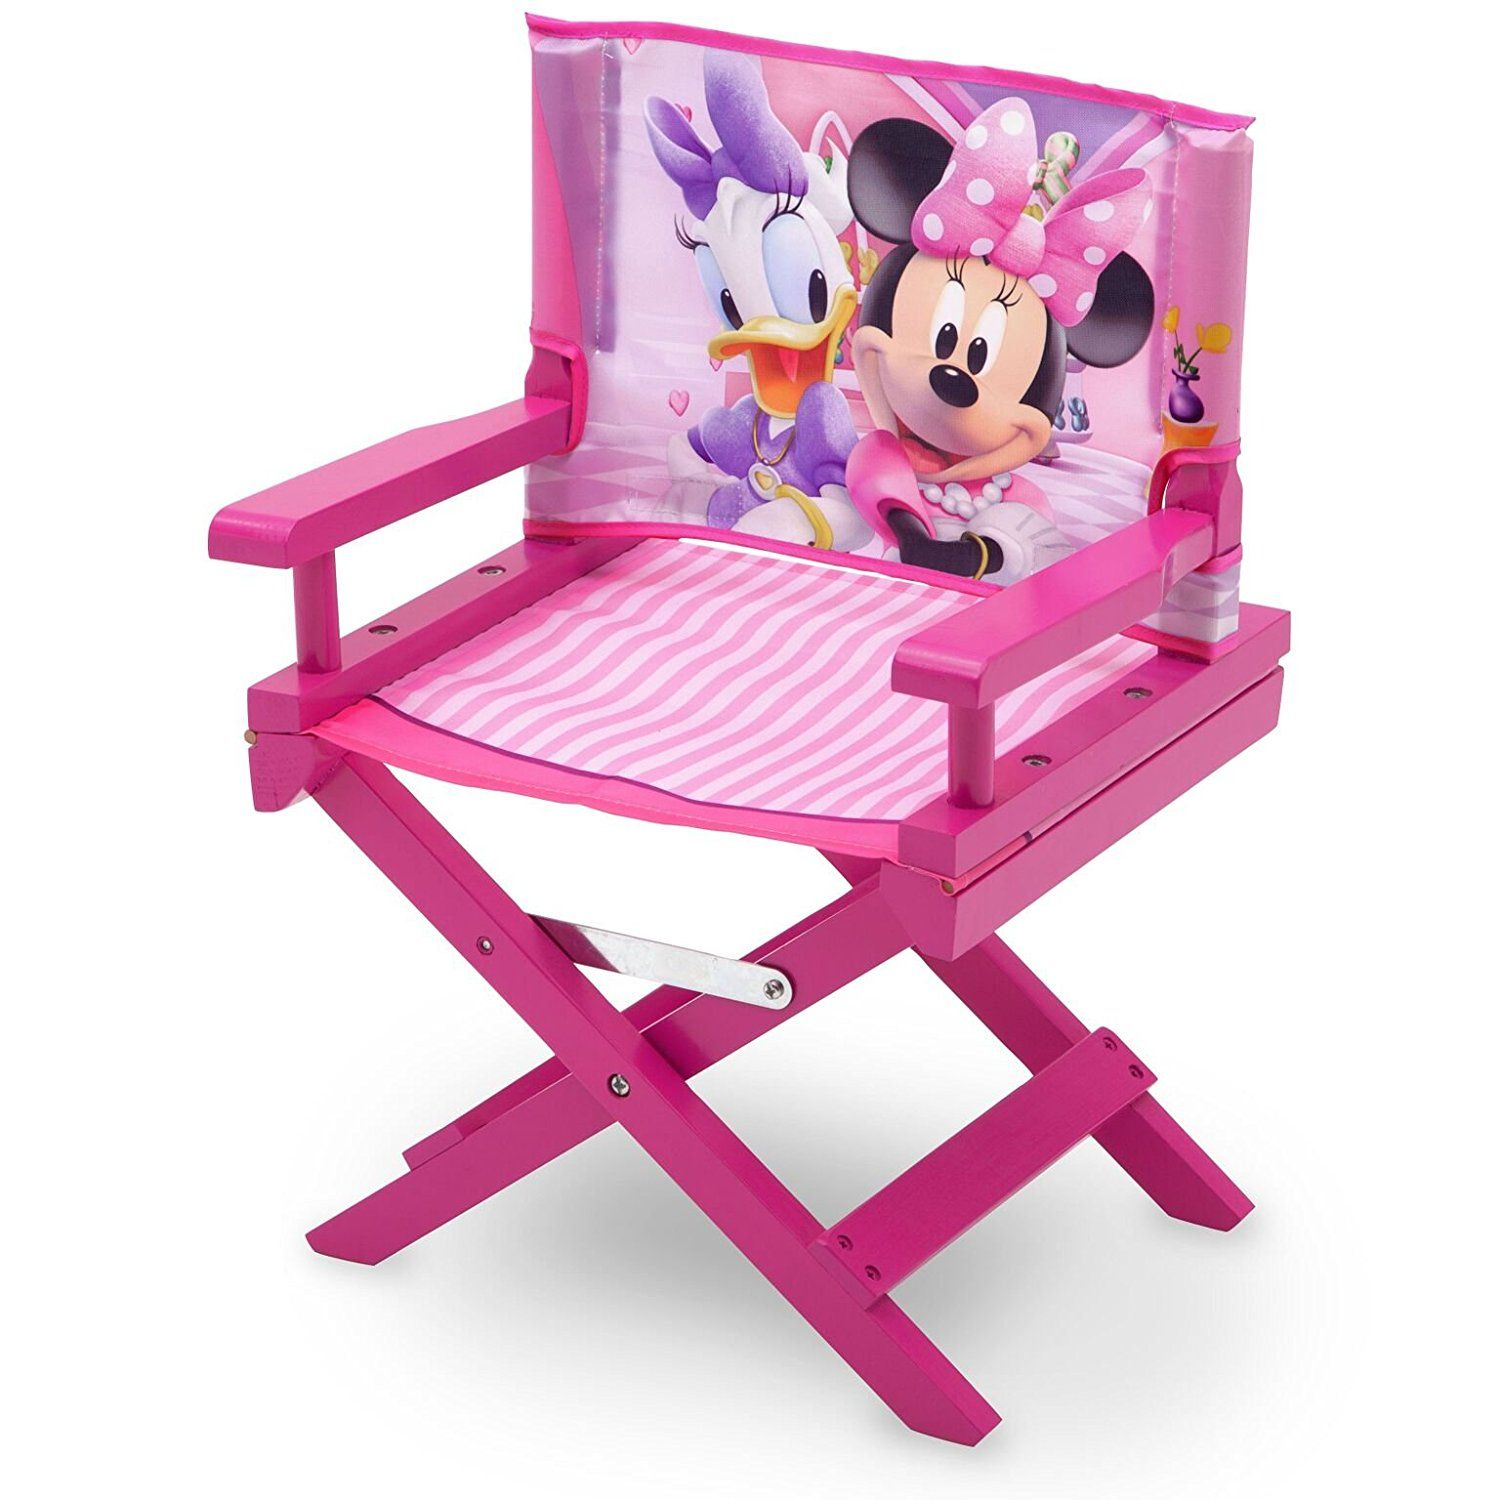 faltstuhl f r kinder direktorstuhl minnie mouse camping stuhl ein tolles highlight im. Black Bedroom Furniture Sets. Home Design Ideas